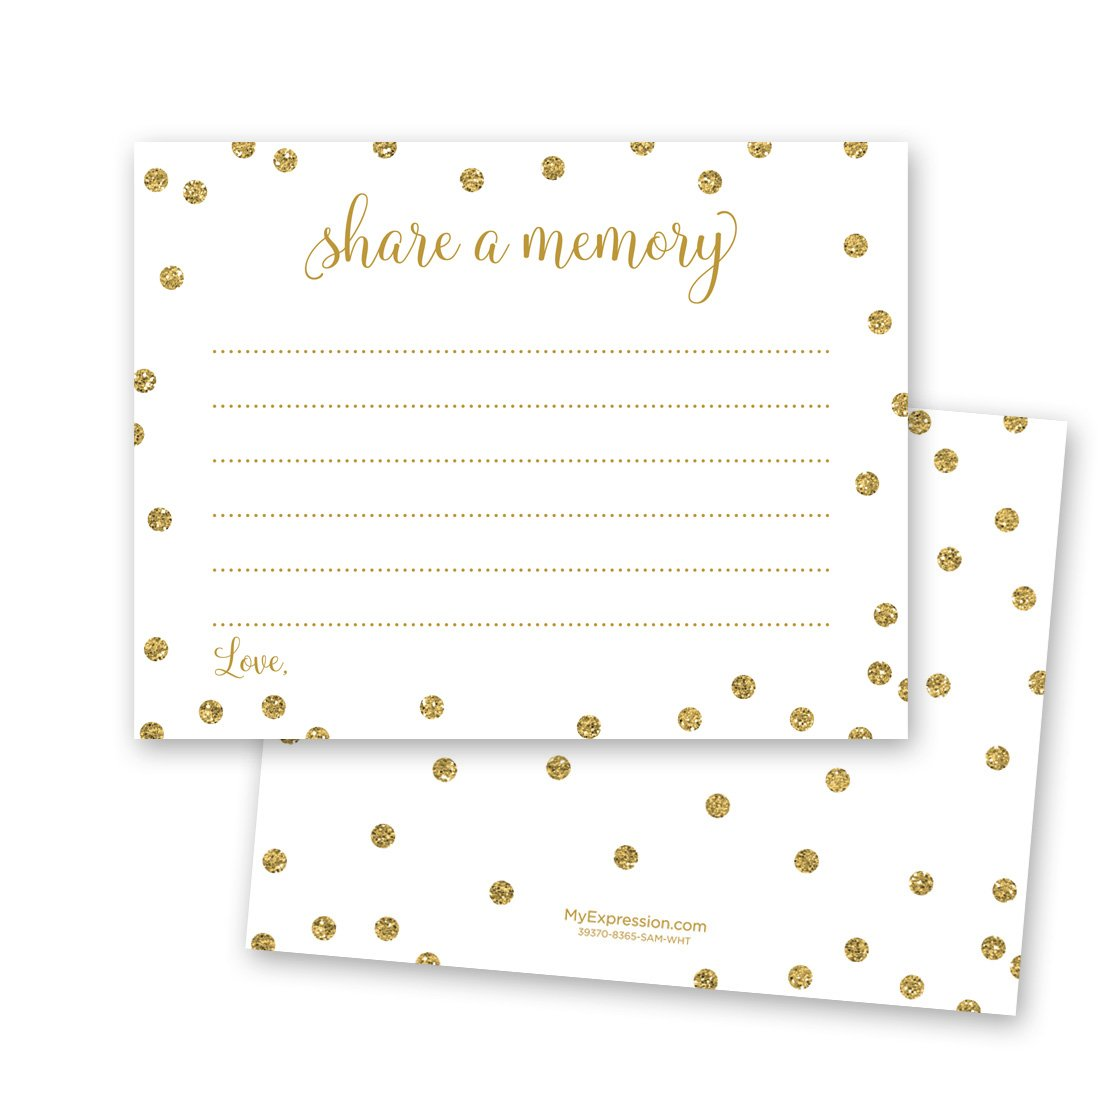 48 Cnt Share a Memory Cards (Faux Gold Glitter on White) - Not Real Glitter